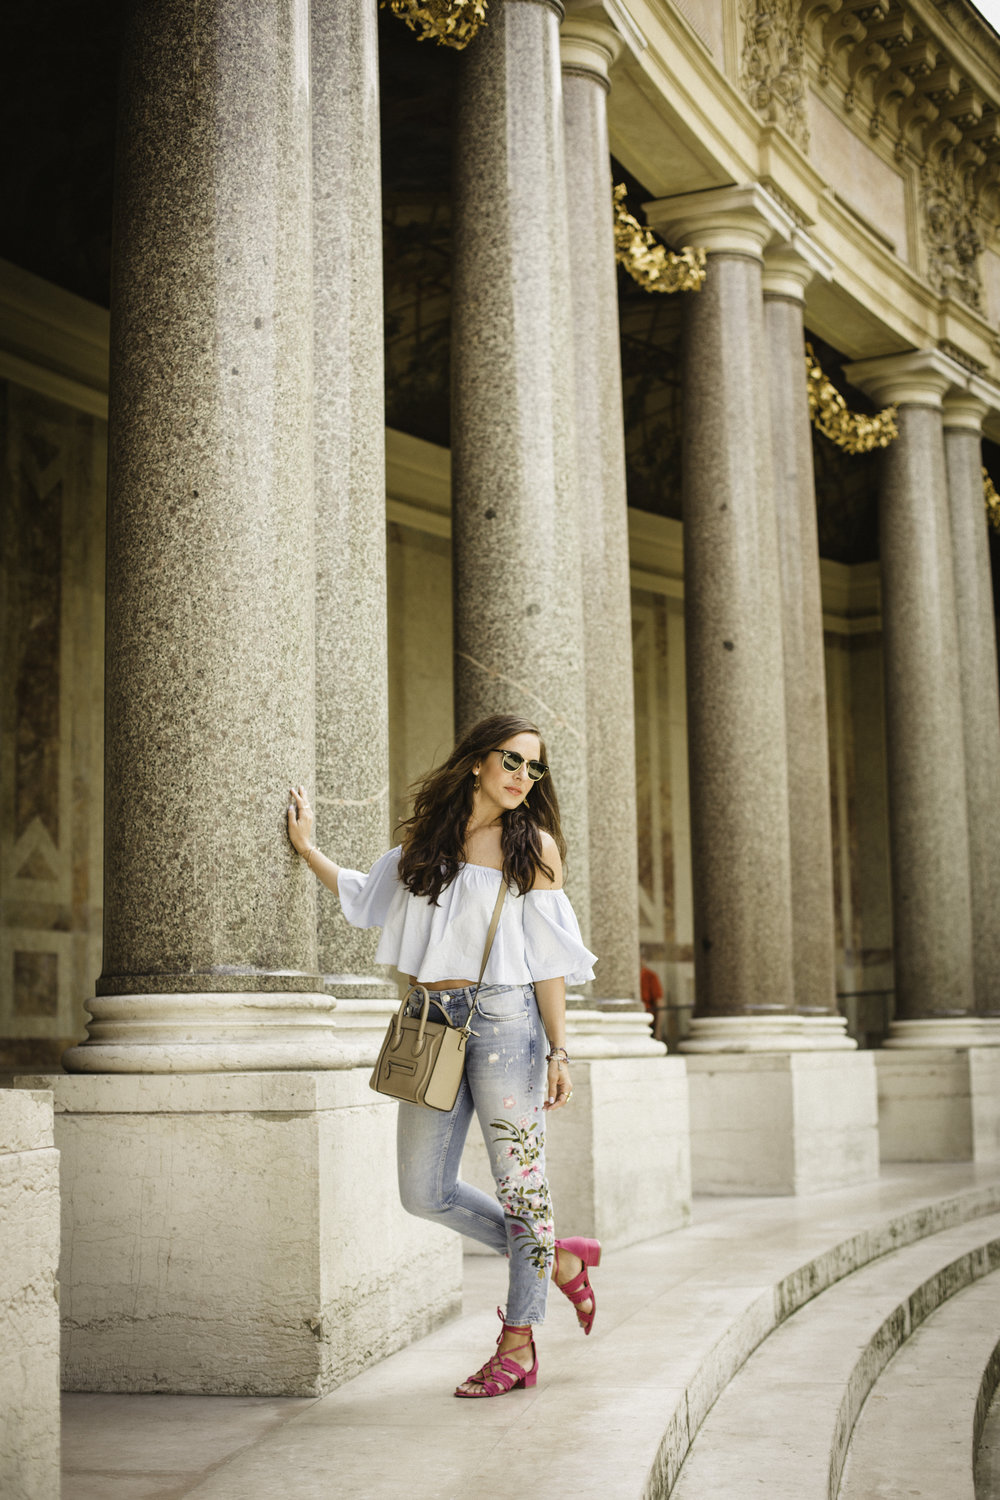 In my Zara top and jeans, Nine West sandals and Celine bag at the Petit Palais in Paris. Photography by Francisco Graciano.